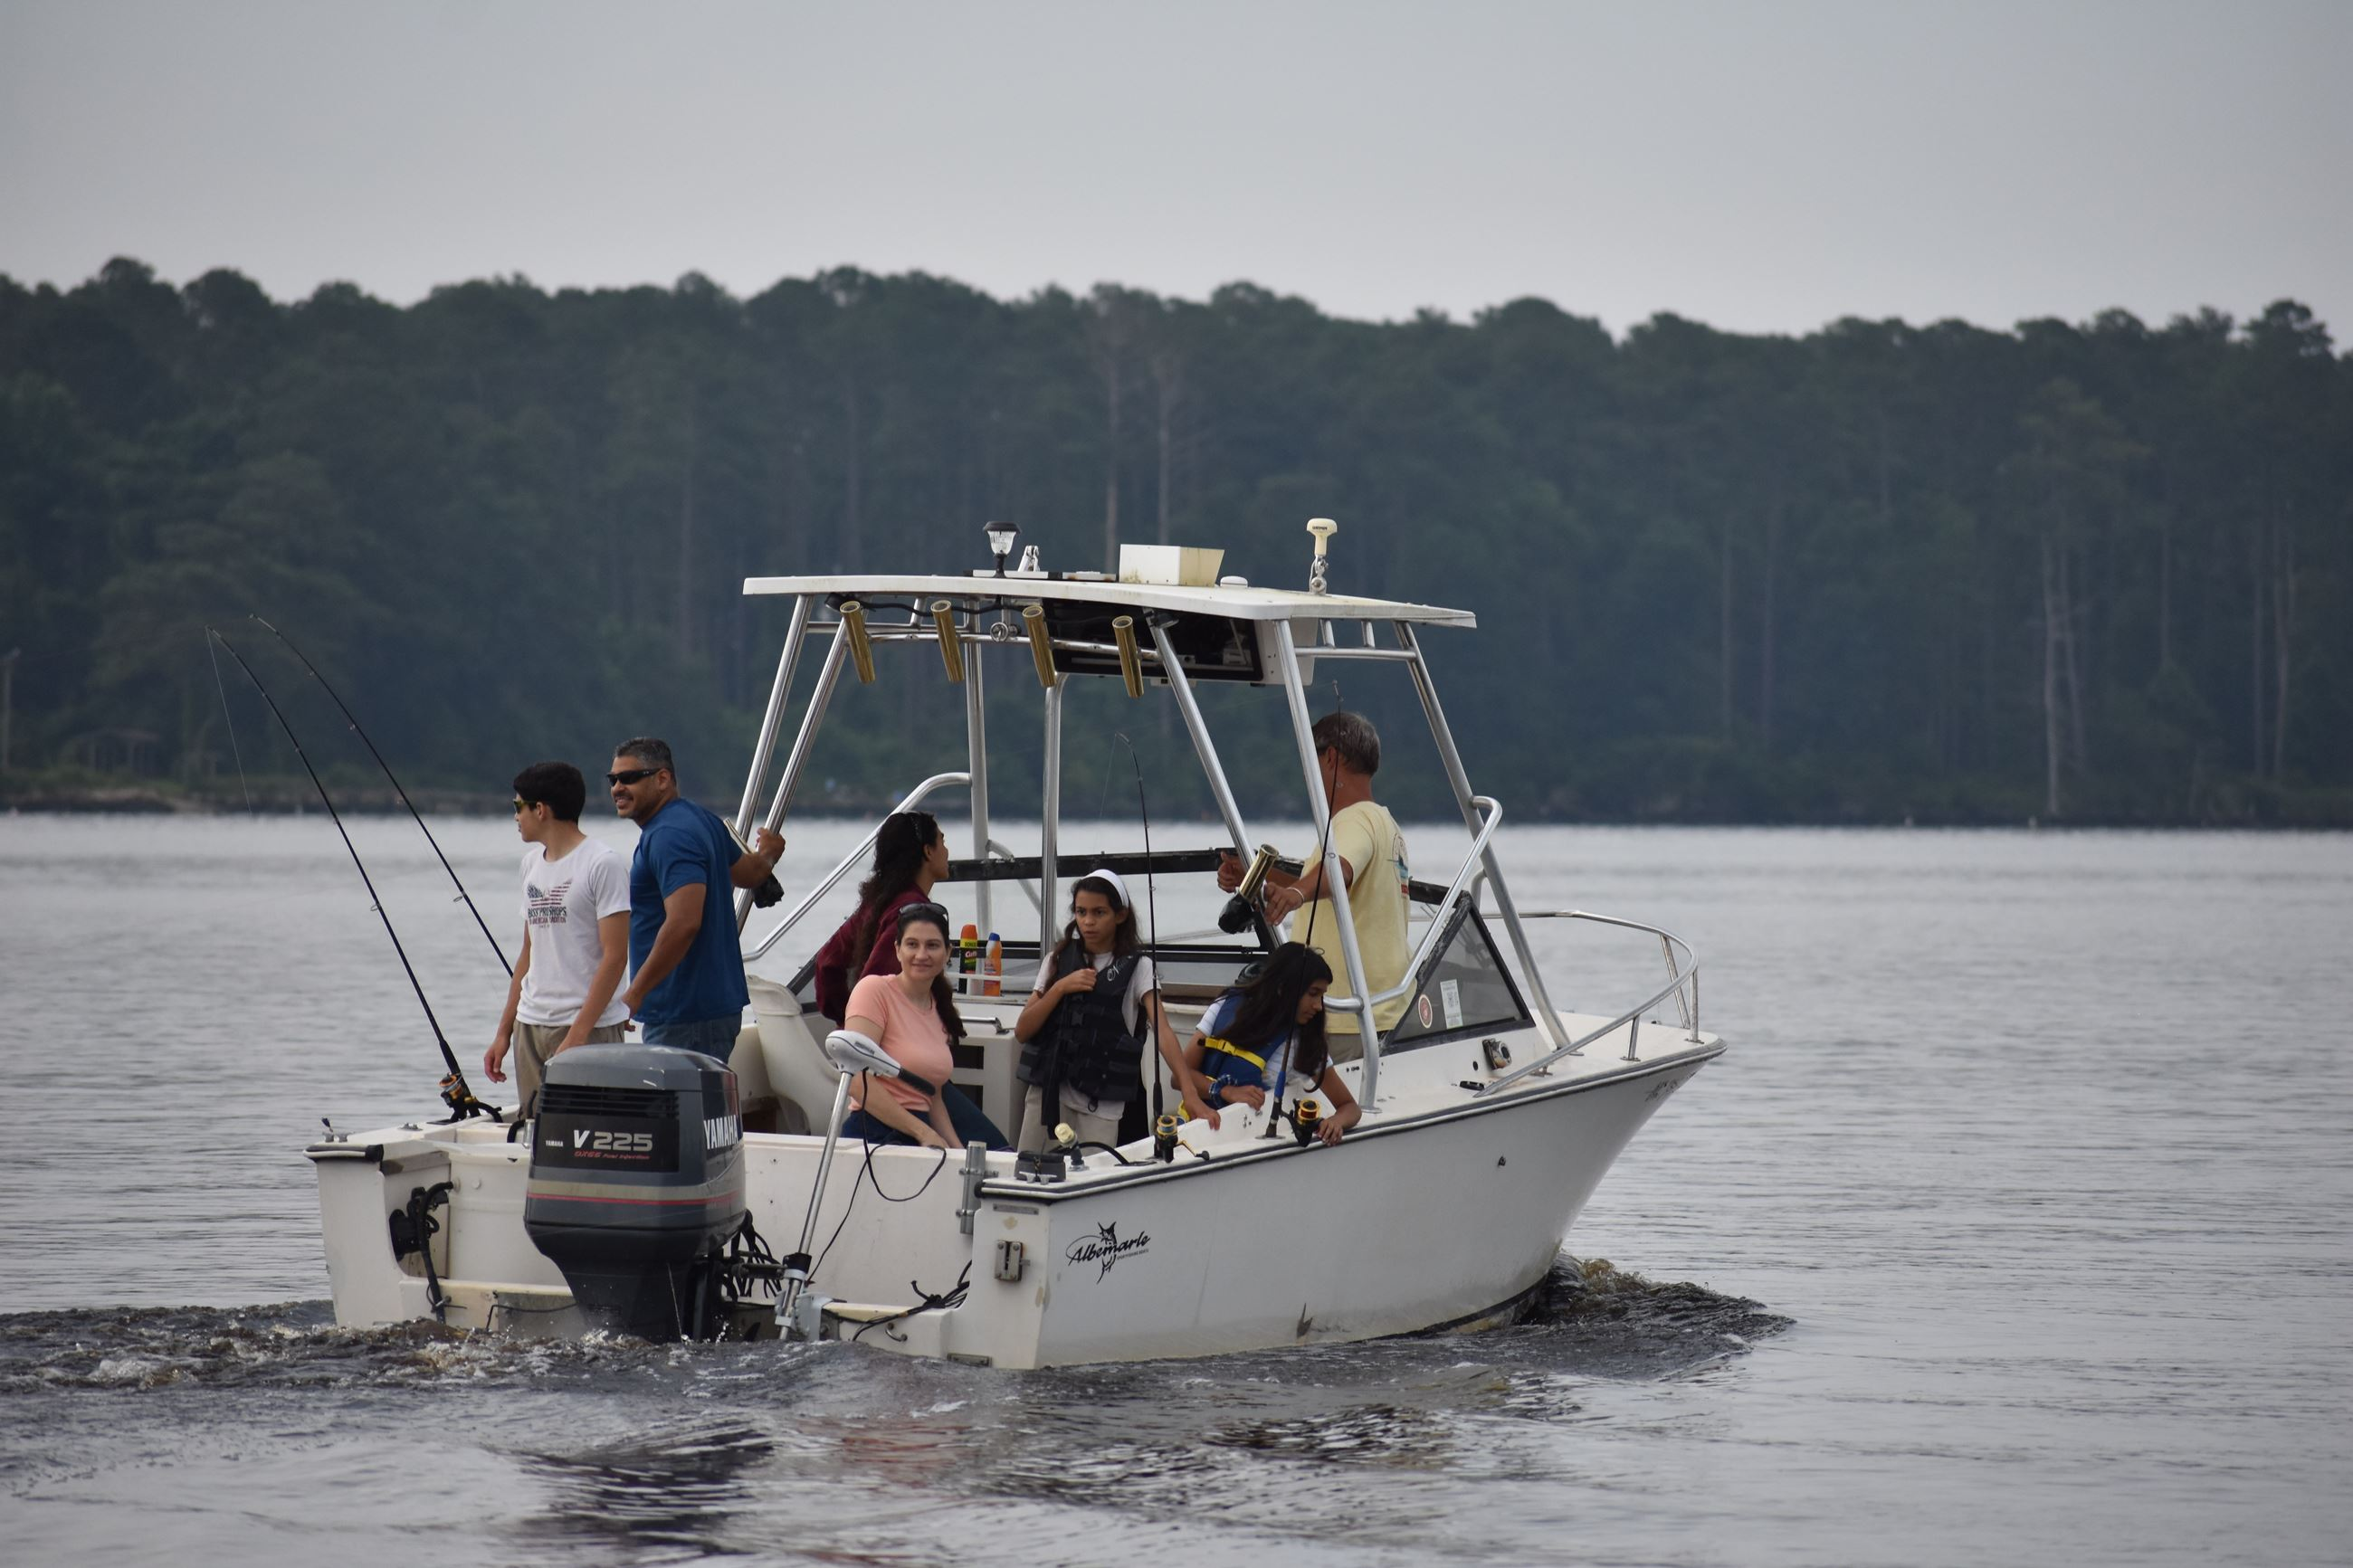 2018-06-14-VisitNC-PhotoNetwork-Fishing-KT-DSC_0726